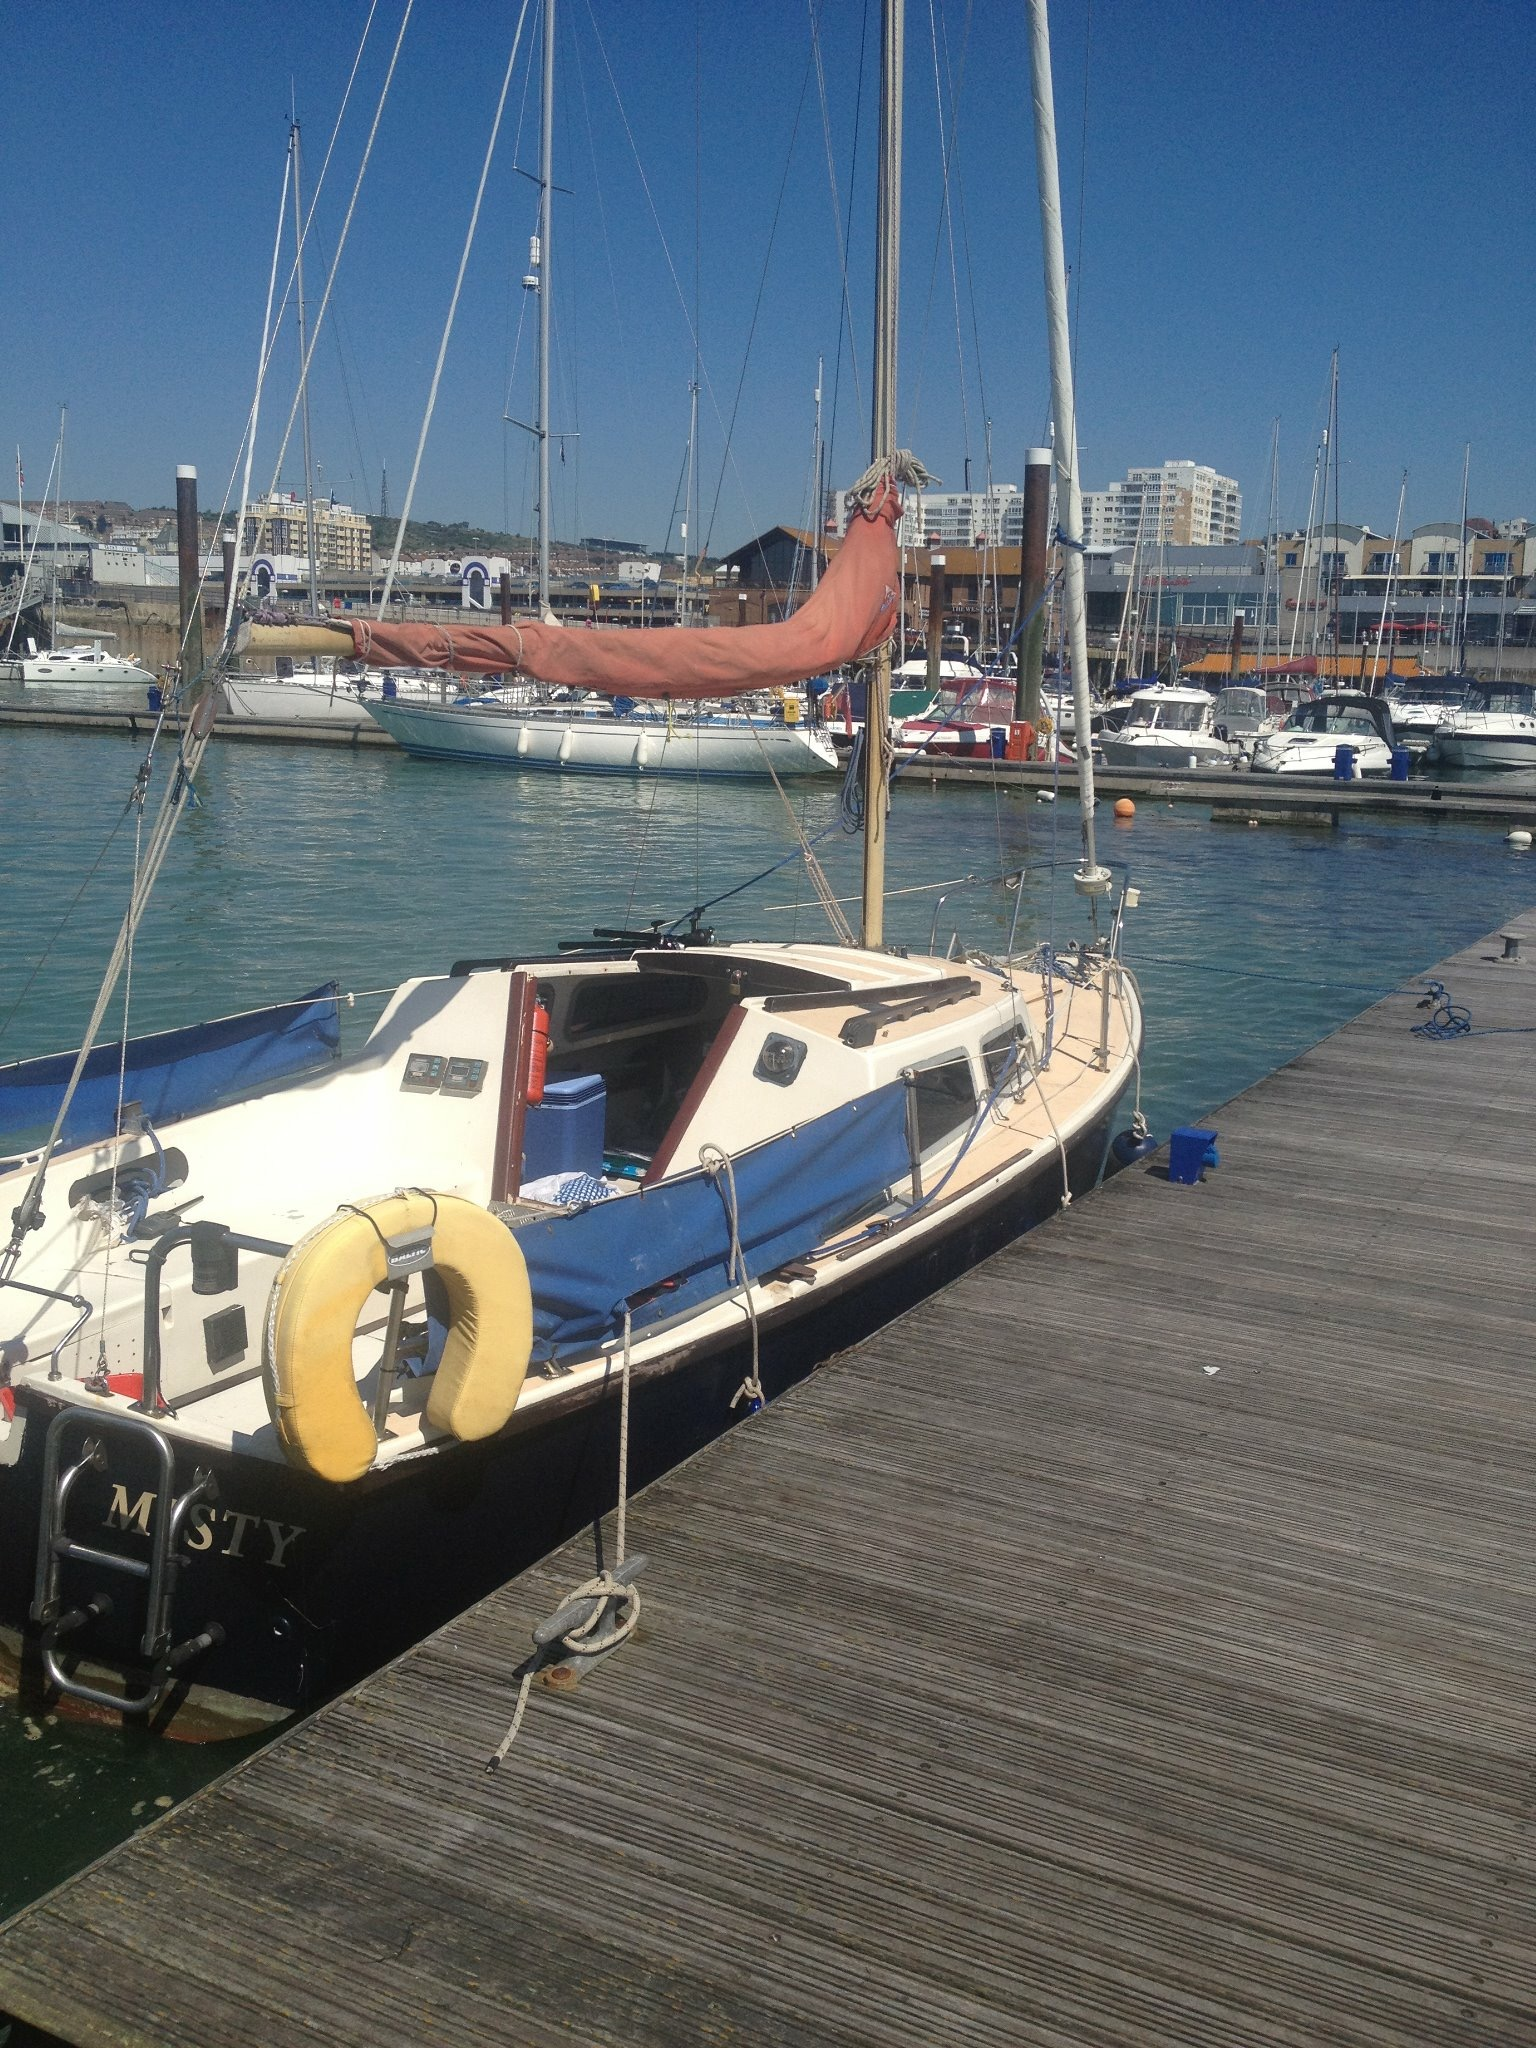 Jaguar 22 Day Sailer For Sale Real Sailing And Yacht Charter Holidays